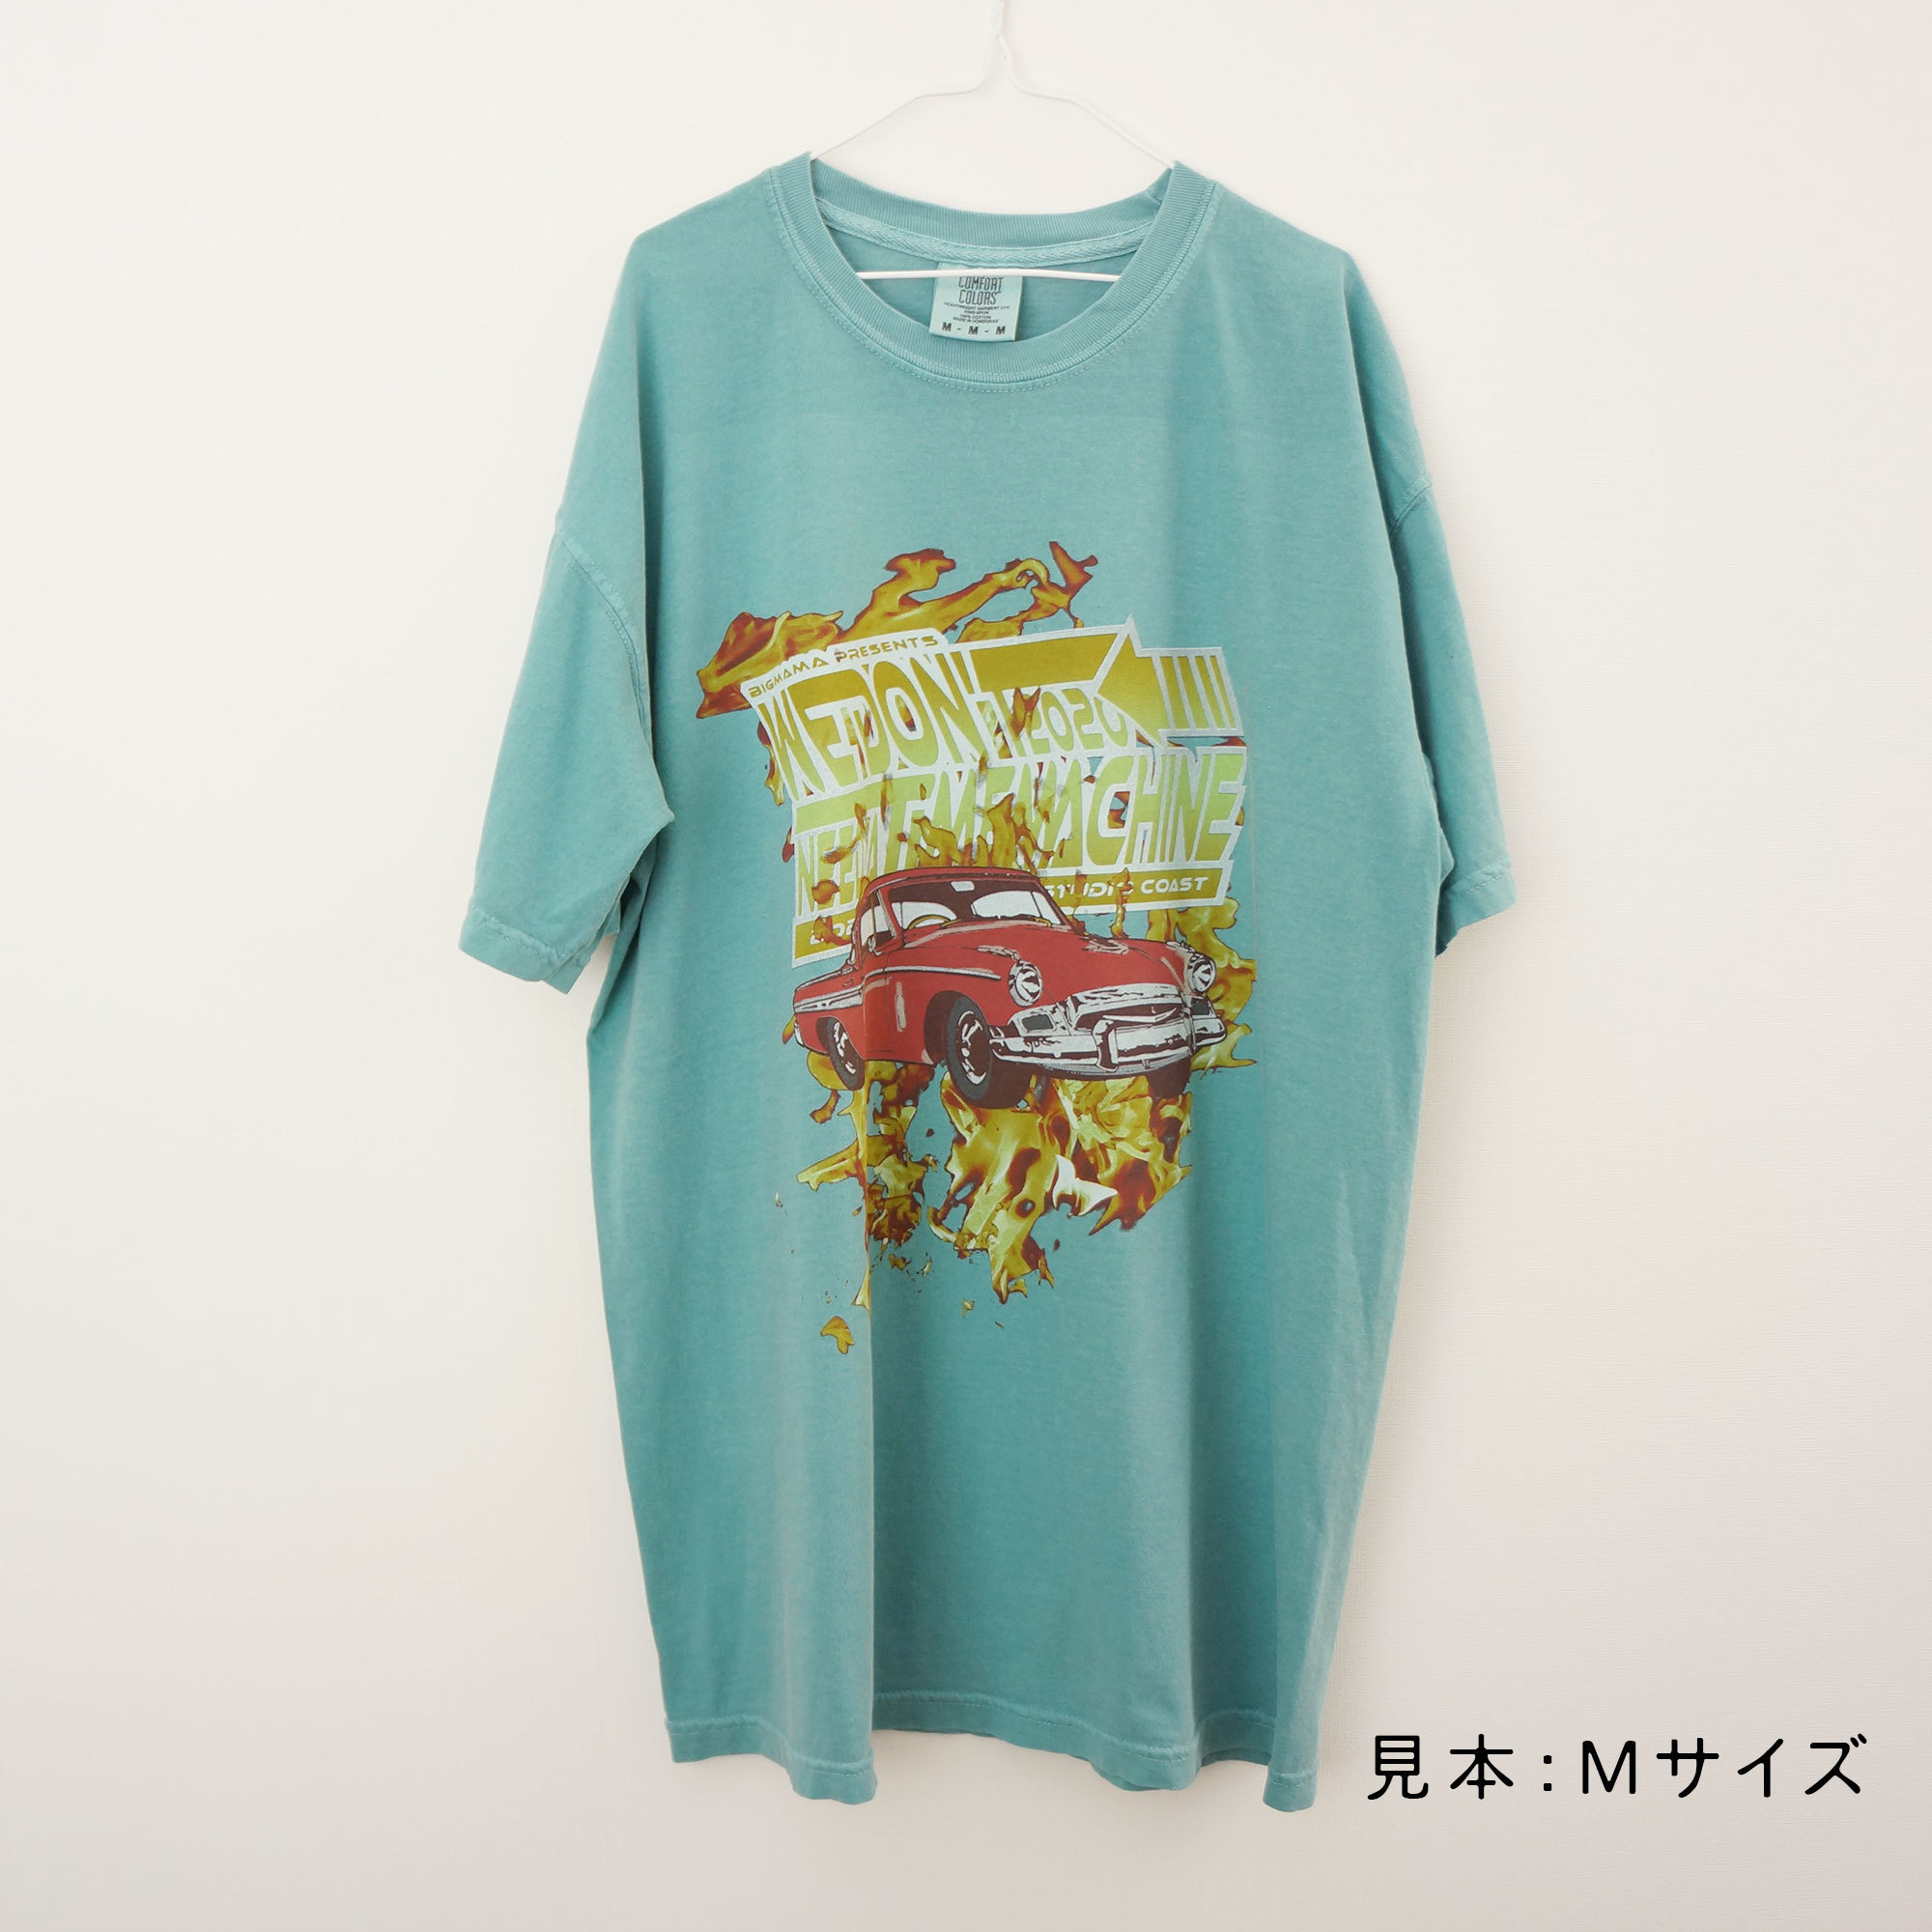 We Don't Need a Time Machine Tシャツ(シーフォーム 青緑)